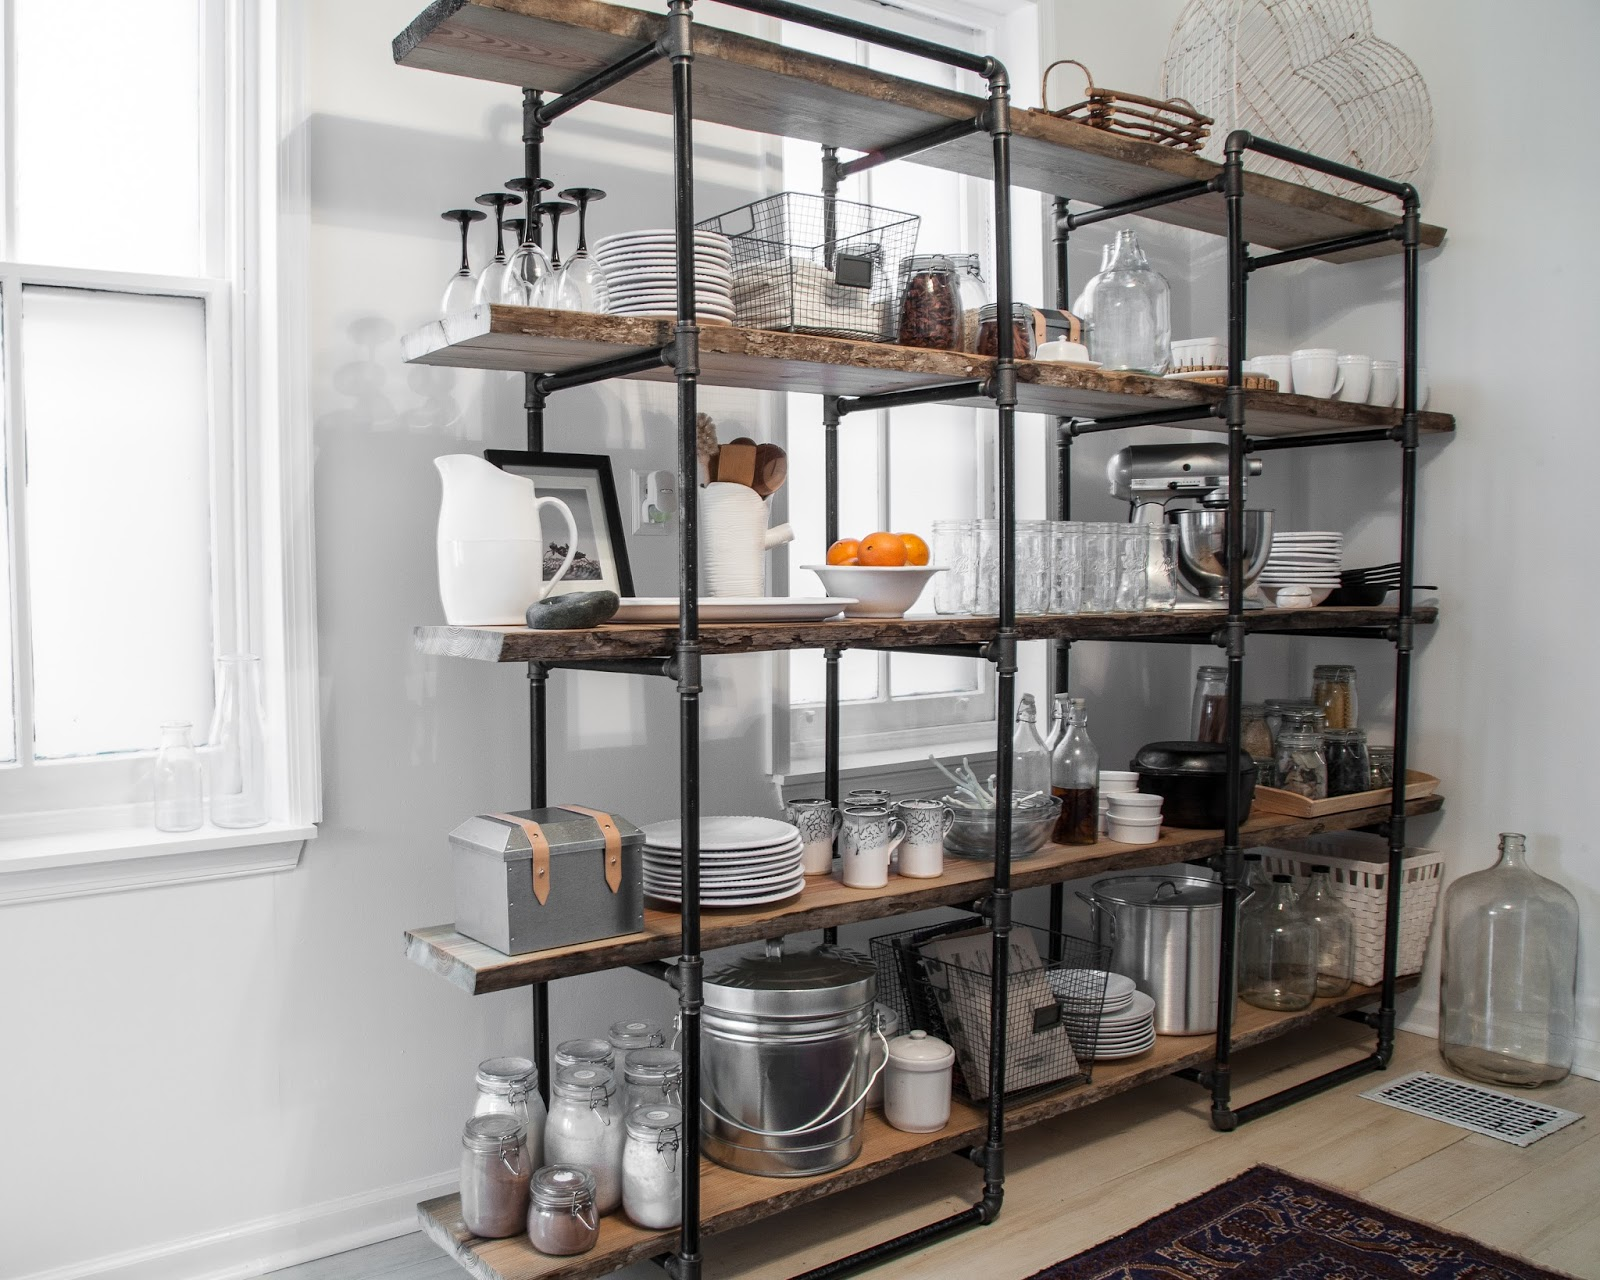 Diy Project How To Build A Freestanding Industrial Shelf: open shelving